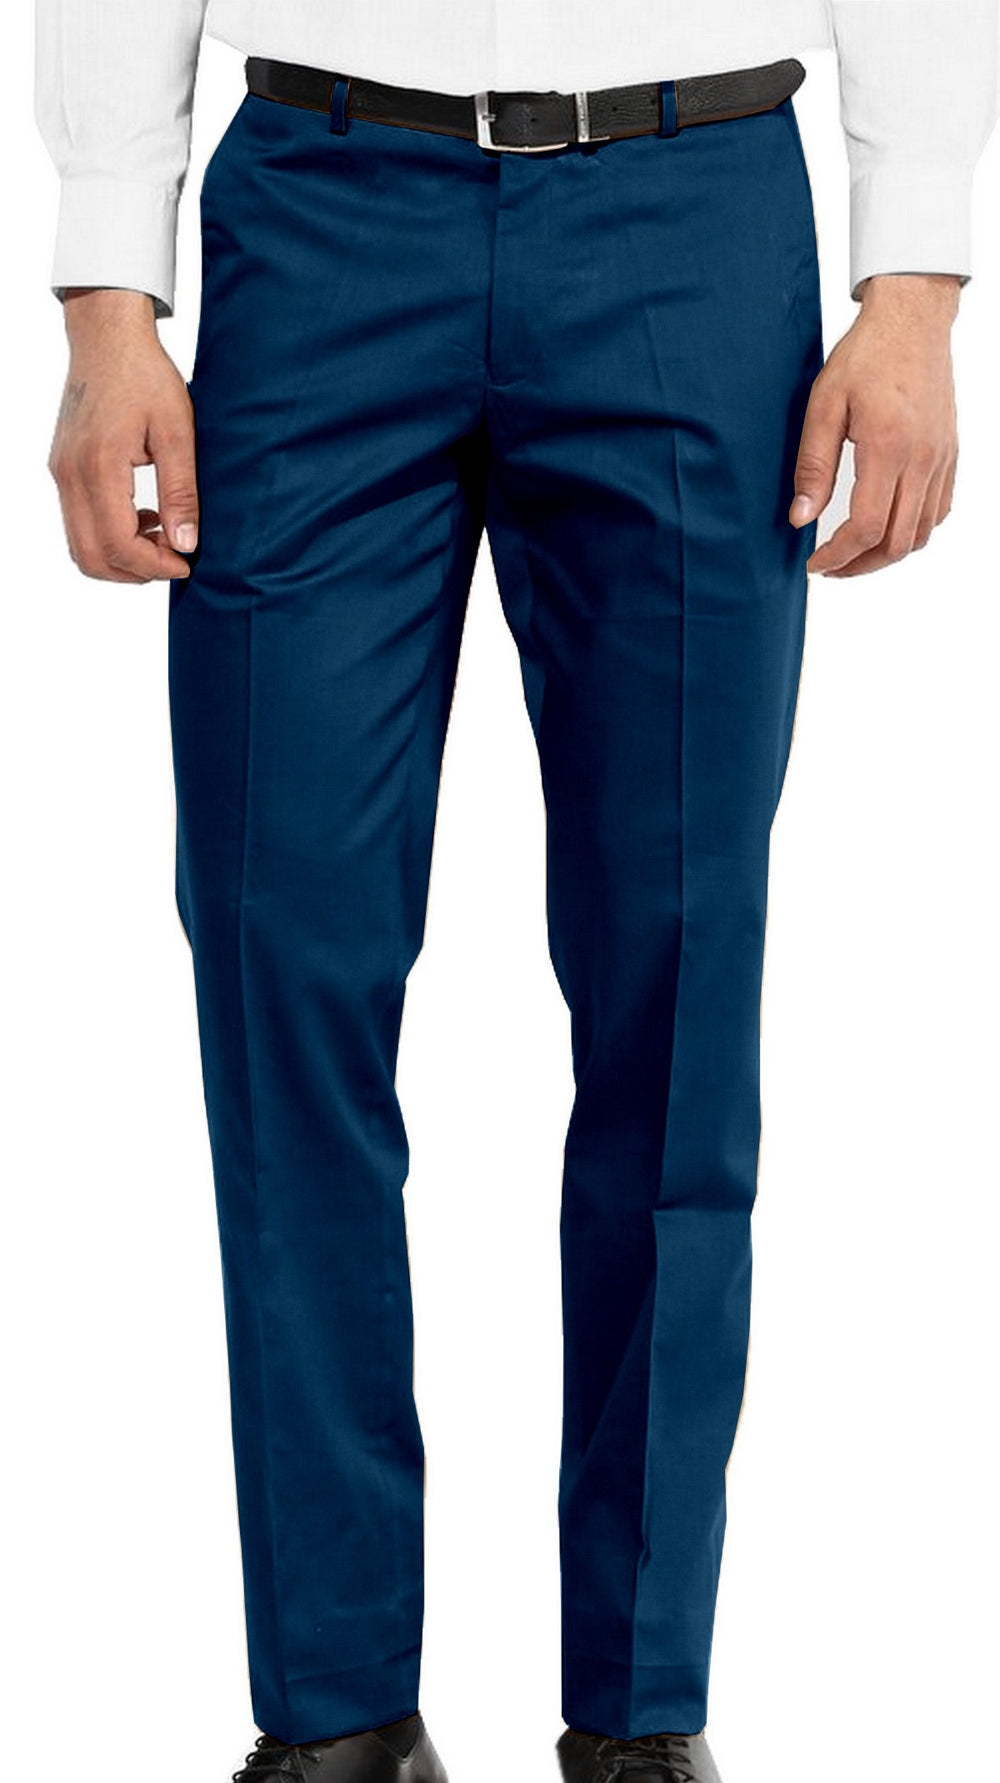 Washable Wool Pants: Snorkel Blue Fine